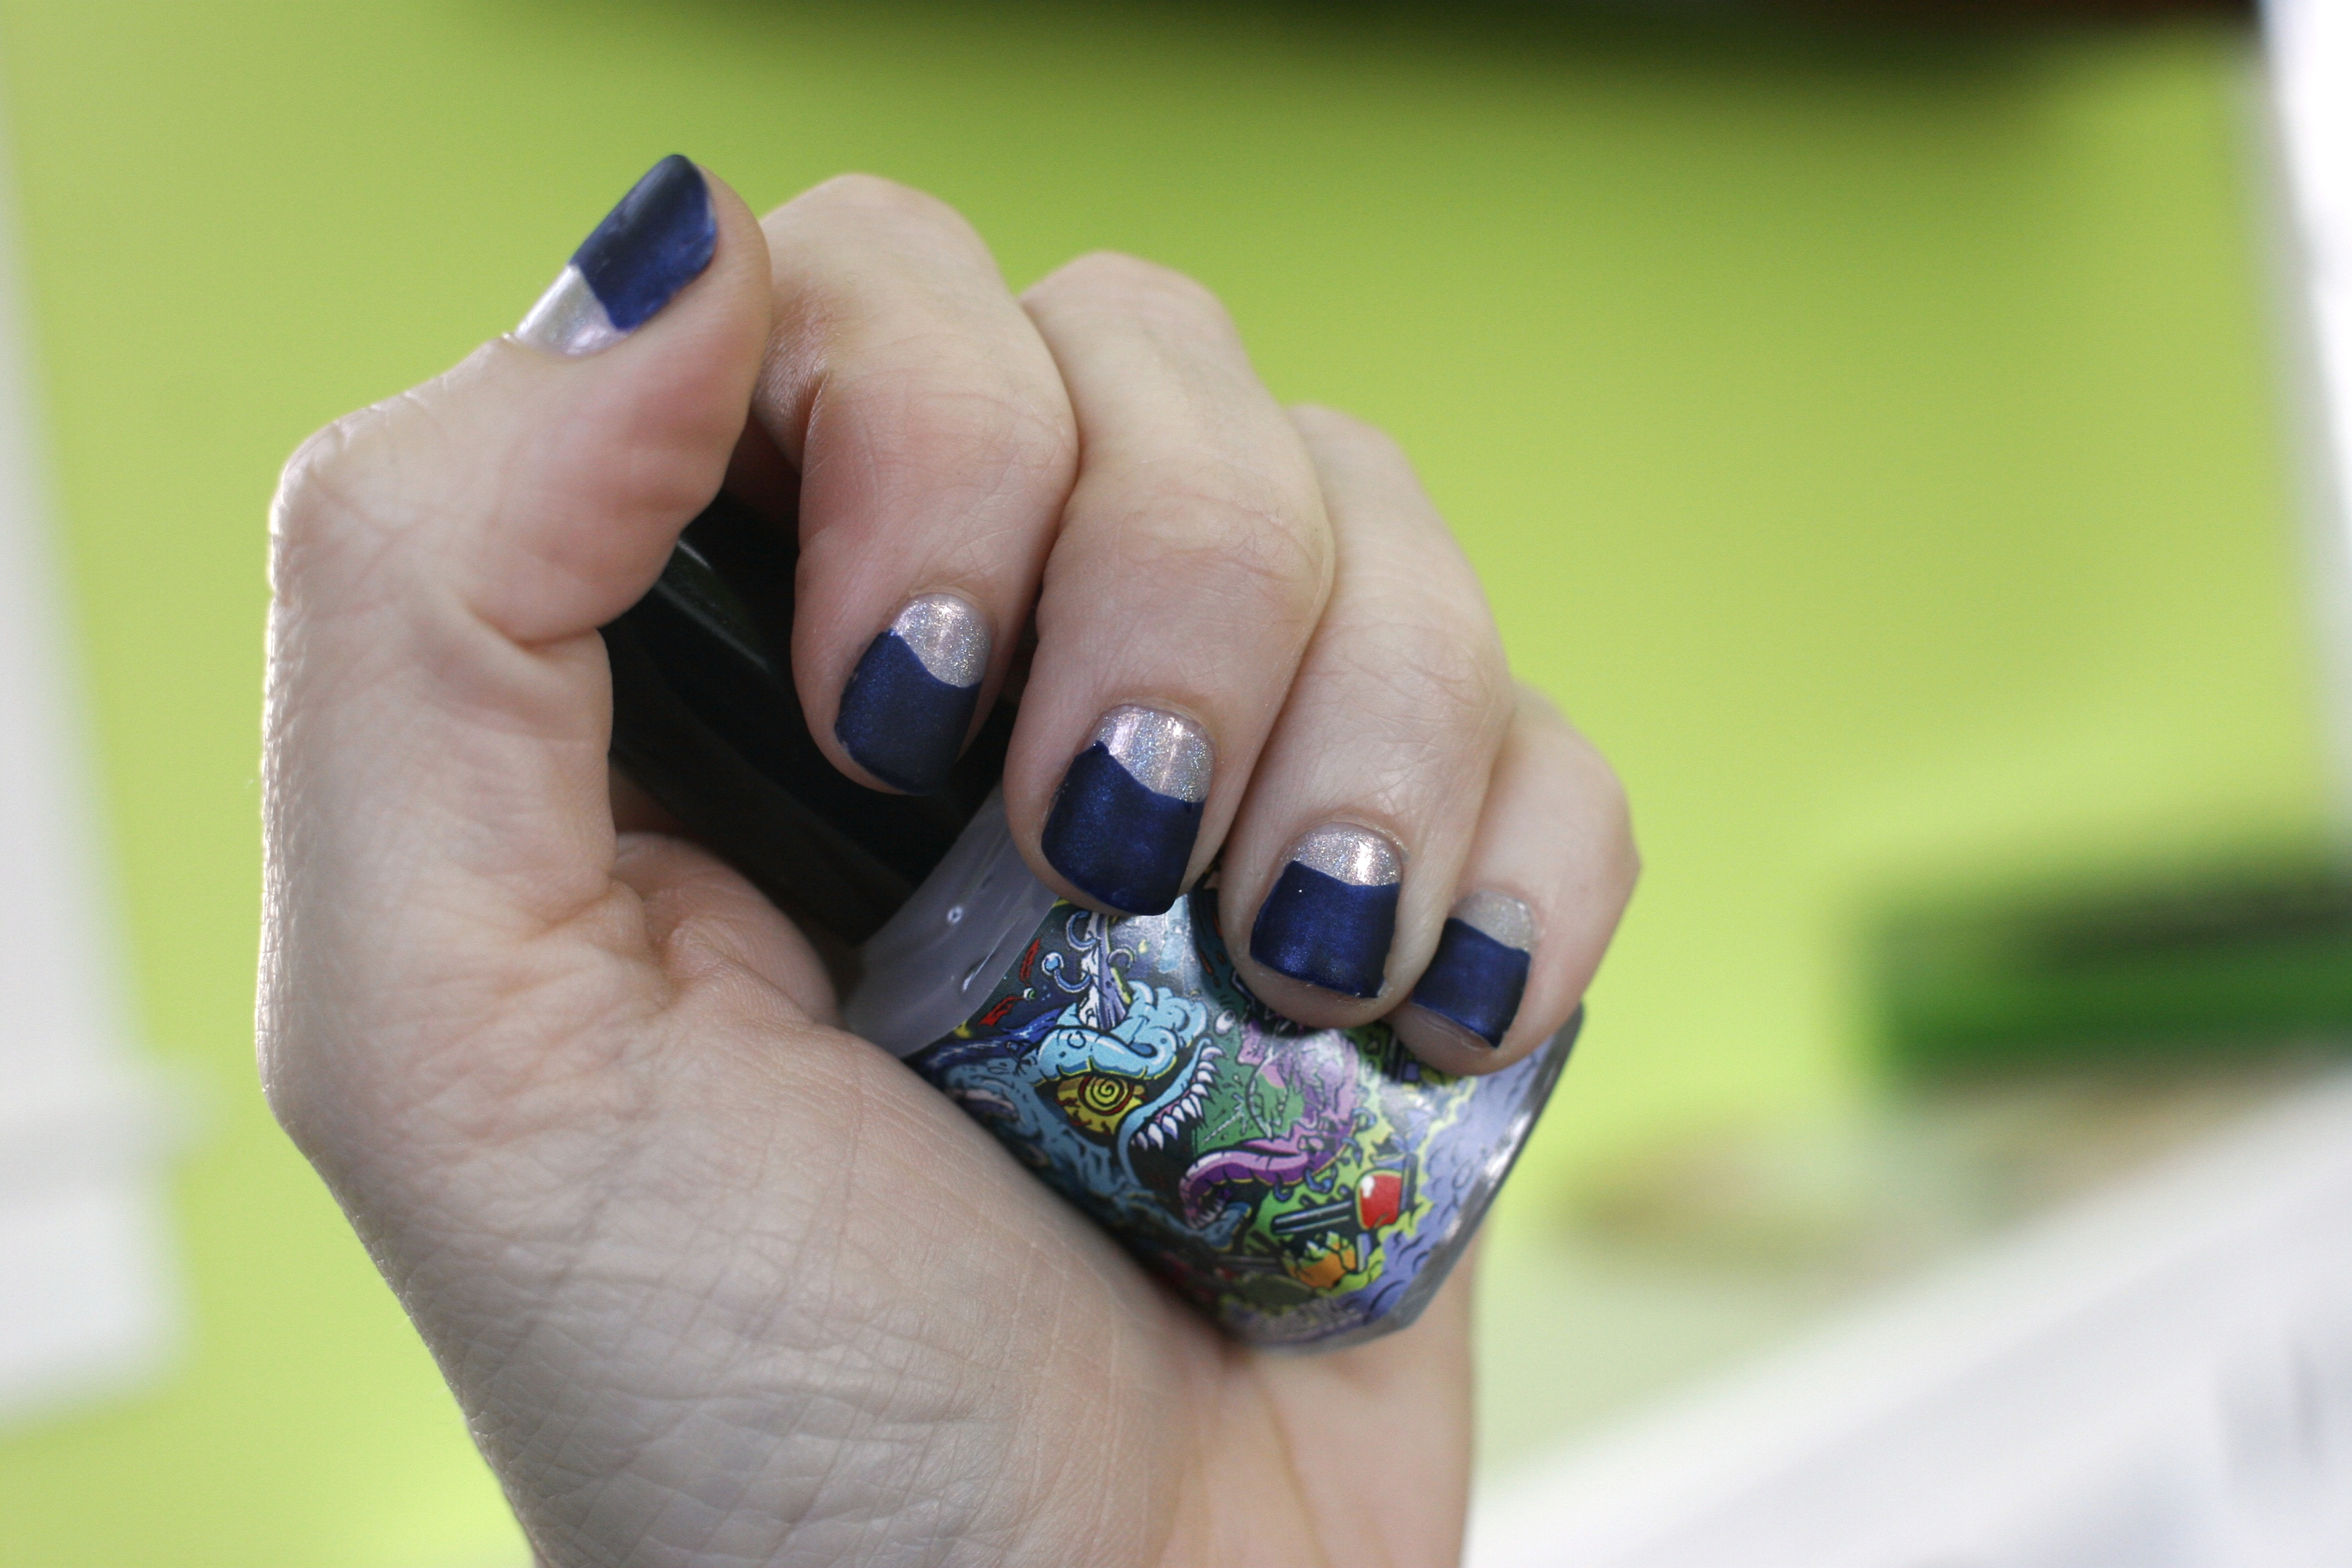 Dark Half Moons On Fingernails (page 3) - Pics about space